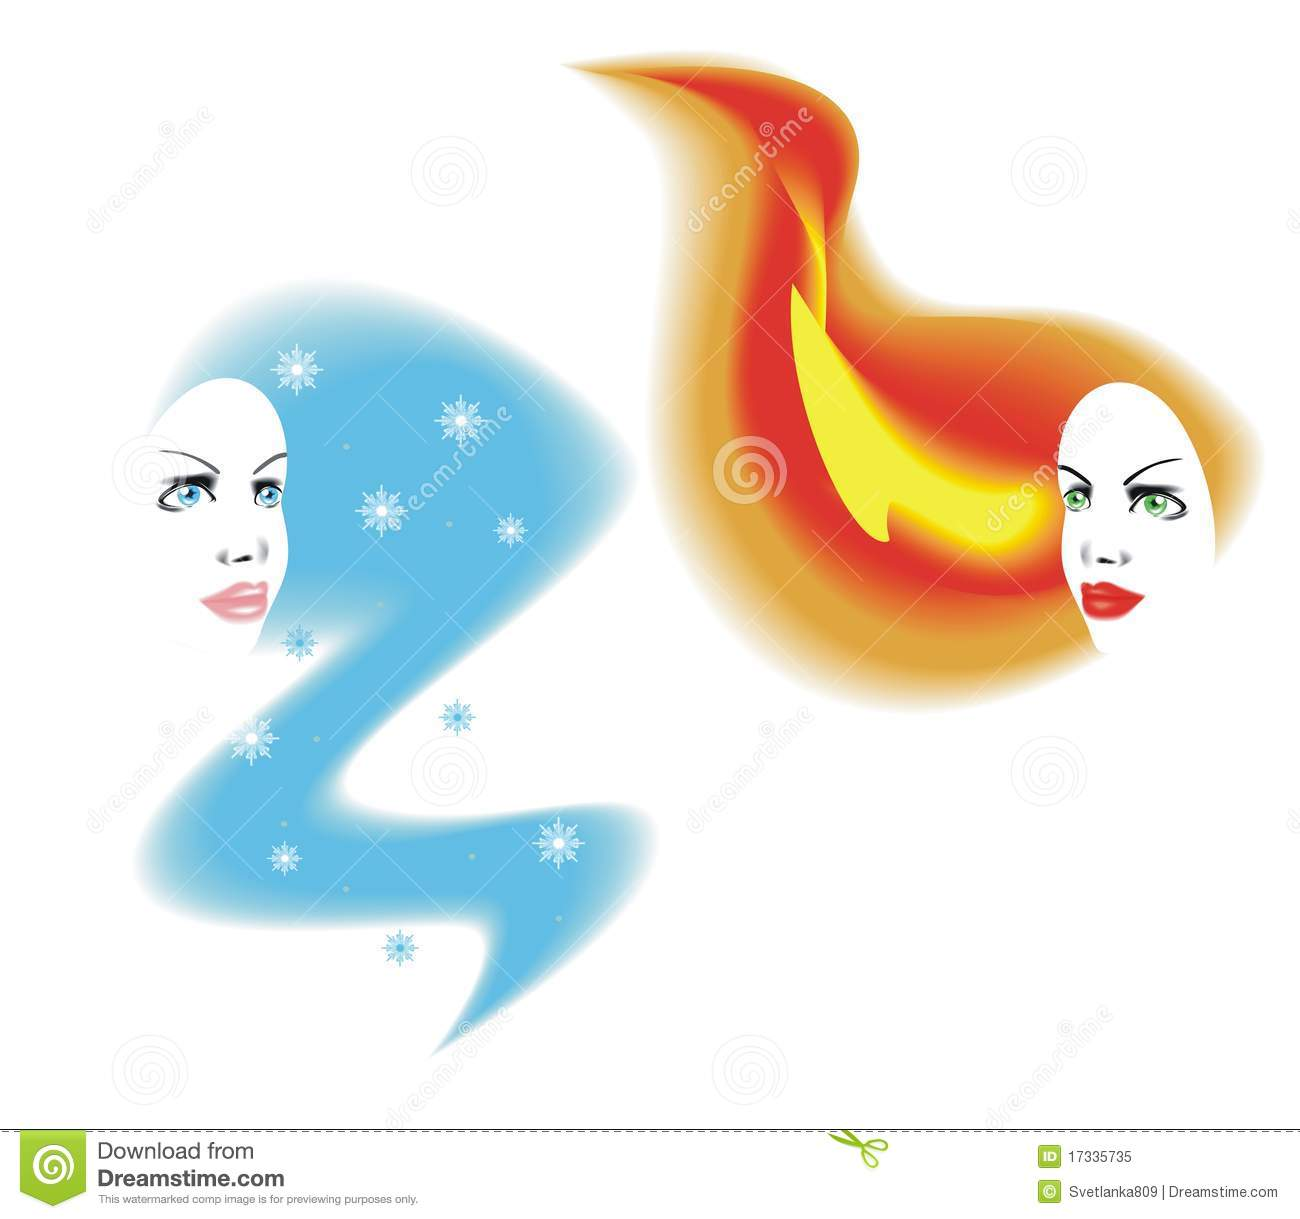 Fire And Ice clipart #7, Download drawings